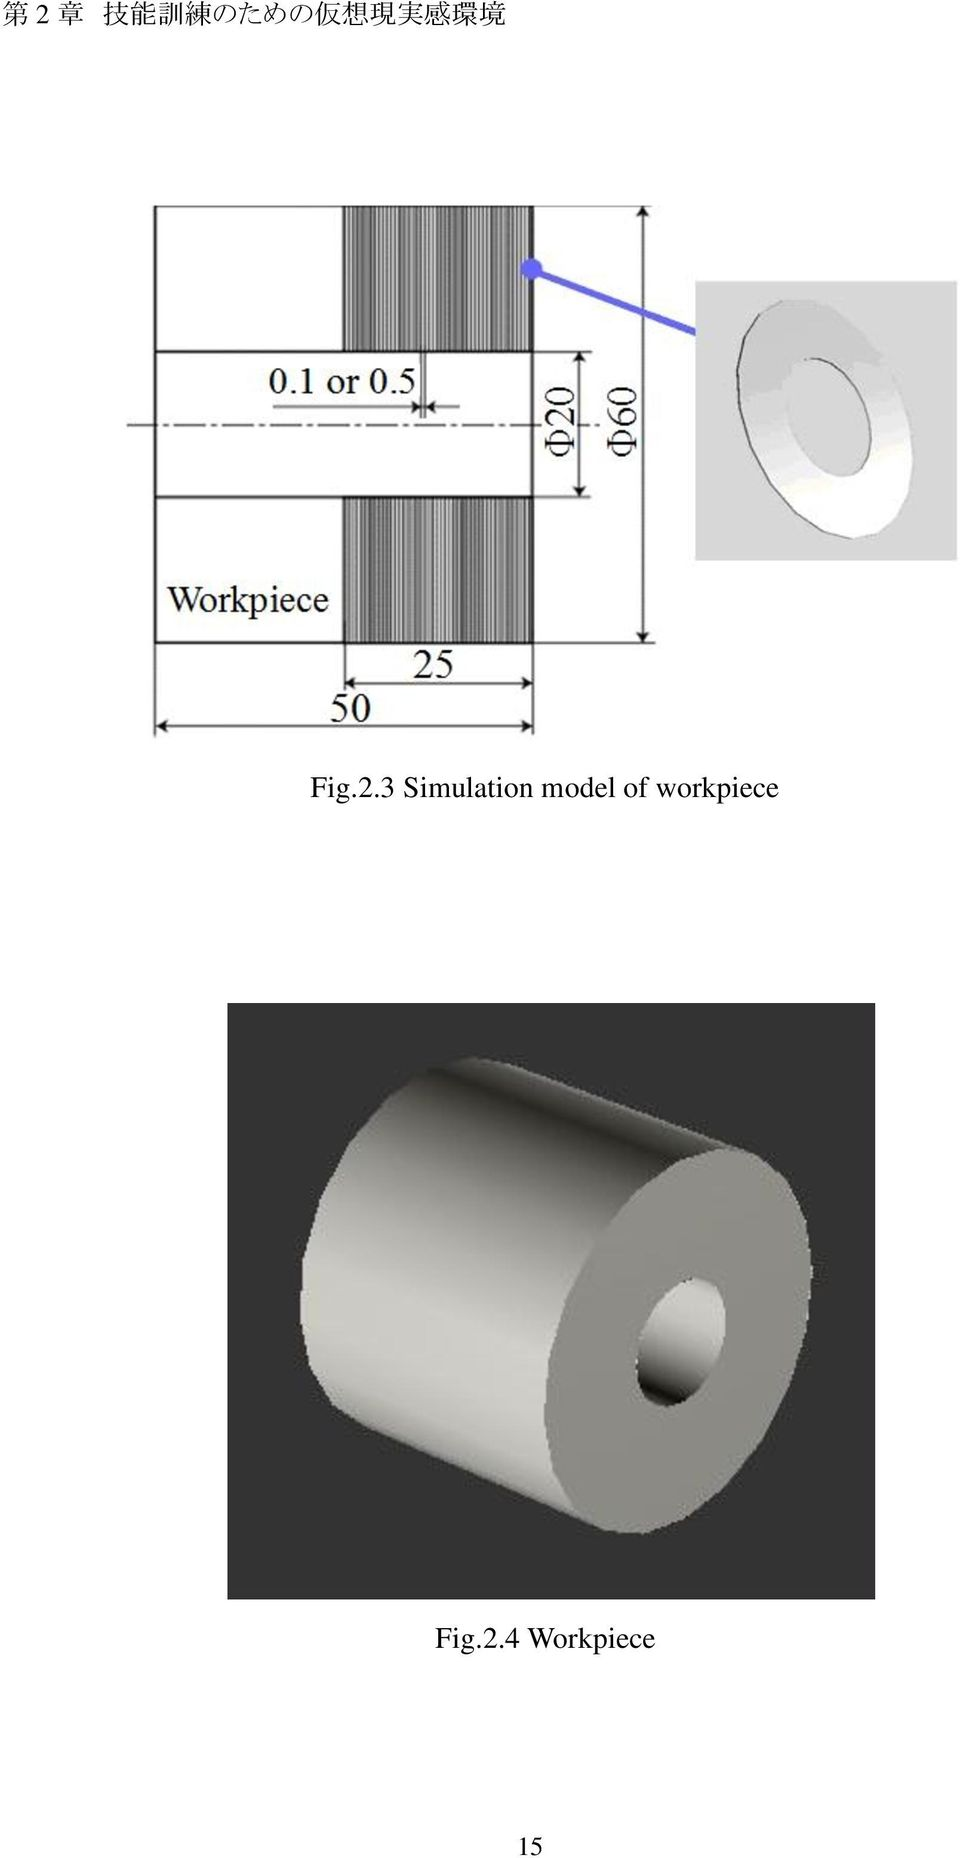 3 Simulation model of